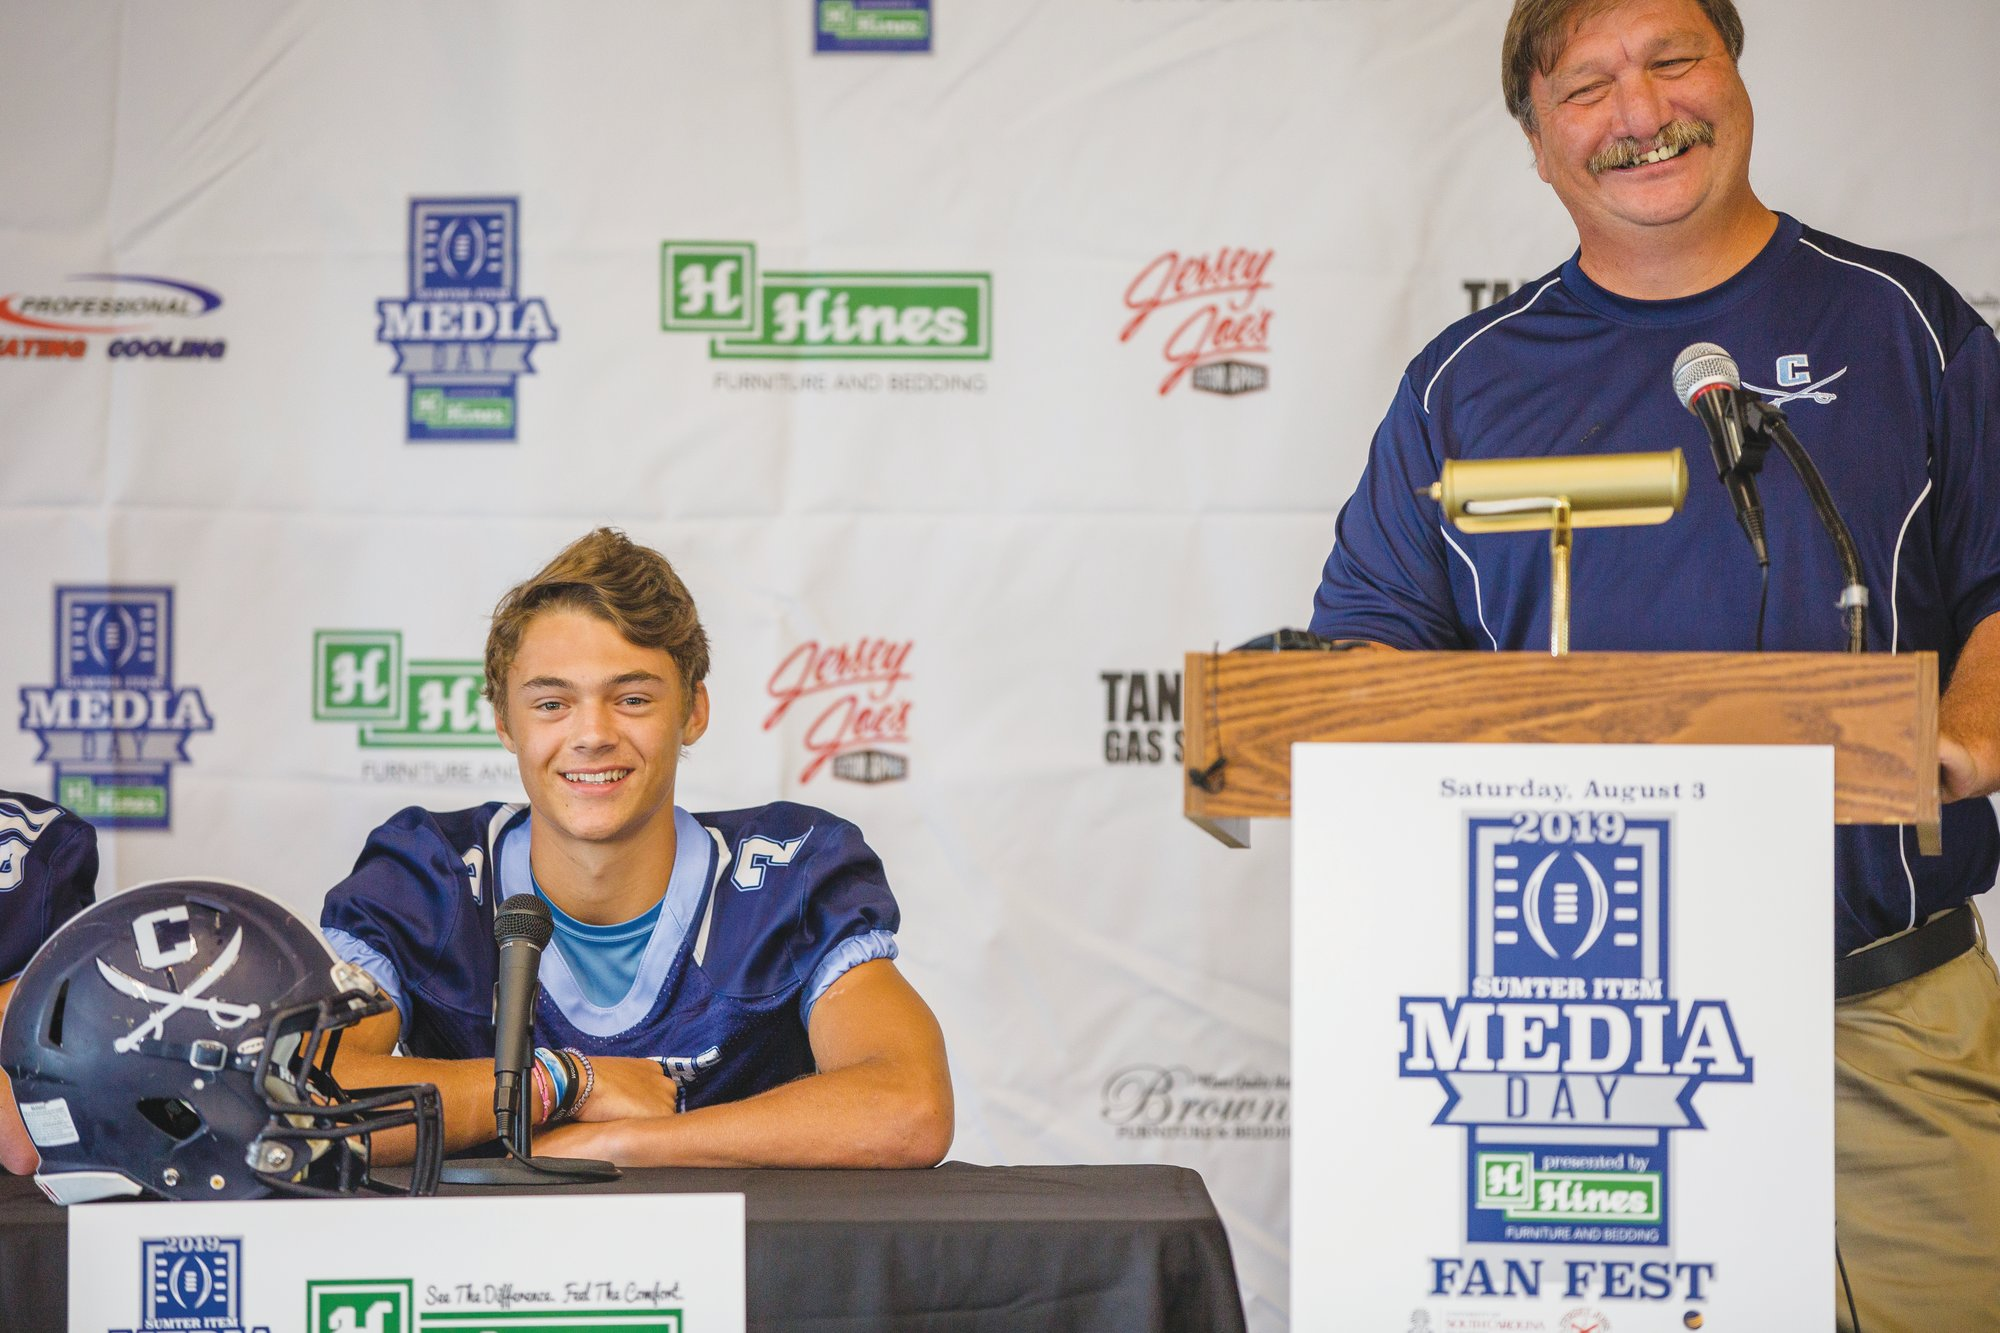 Robert E. Lee coach David Rankin, right, and Cavalier quarterback Jet Smith share a laugh at the 2019 Sumter Item Media Day.